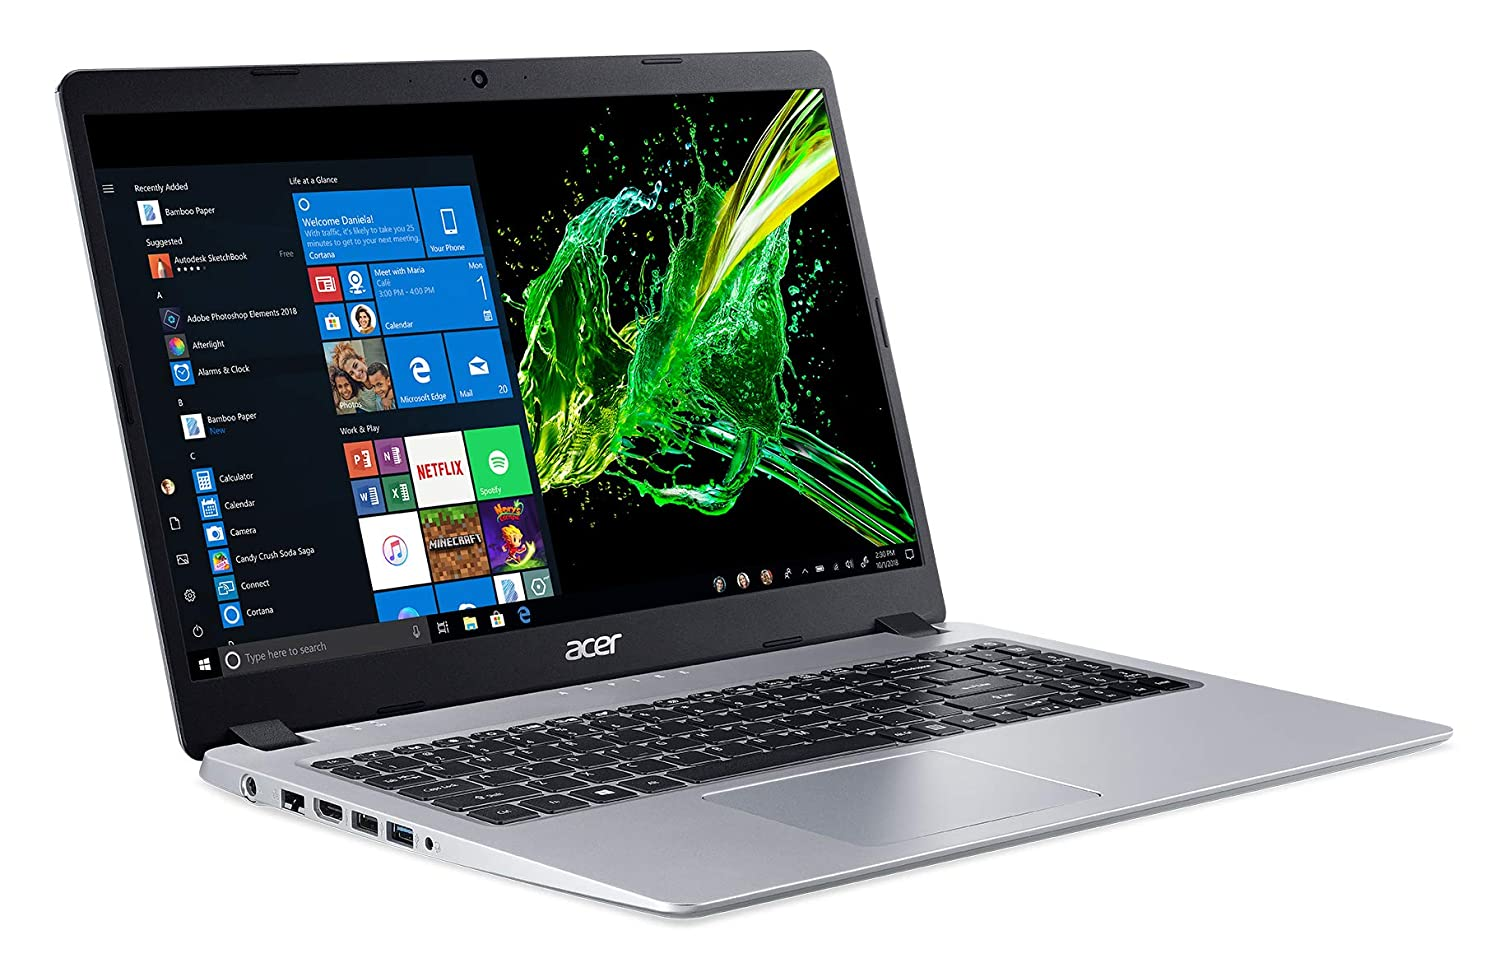 Acer Aspire 5 Slim Laptop, 15.6 inches Full HD IPS Display